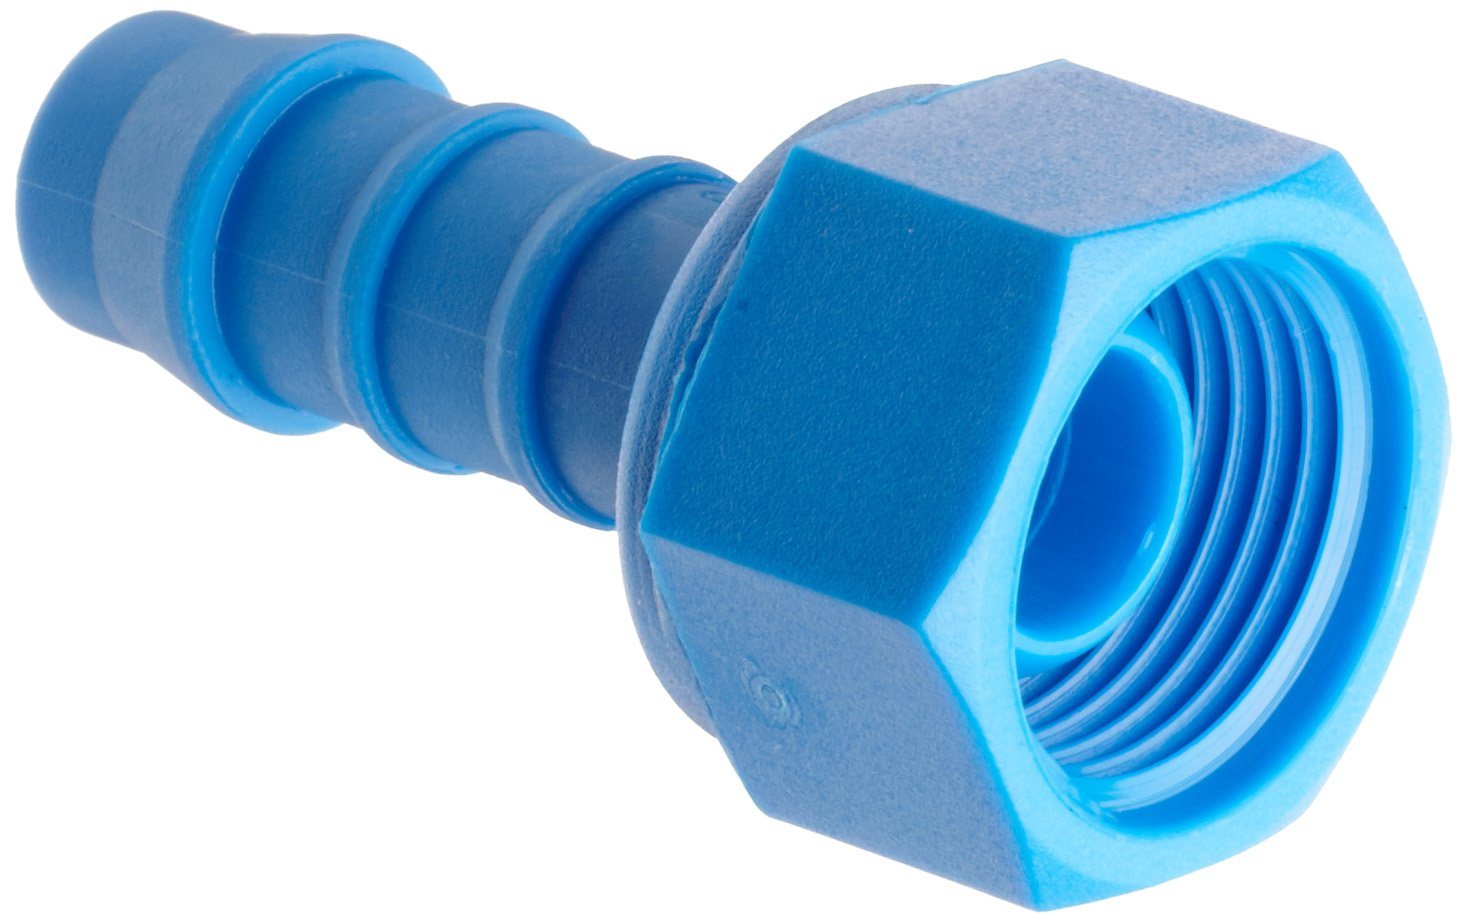 Quickun 3//16 Hose Barb Thru-Bulk Bulkhead Fitting Plastic Hex Straight Union Adapter Fitting for Water//Fuel//Air Pack of 2